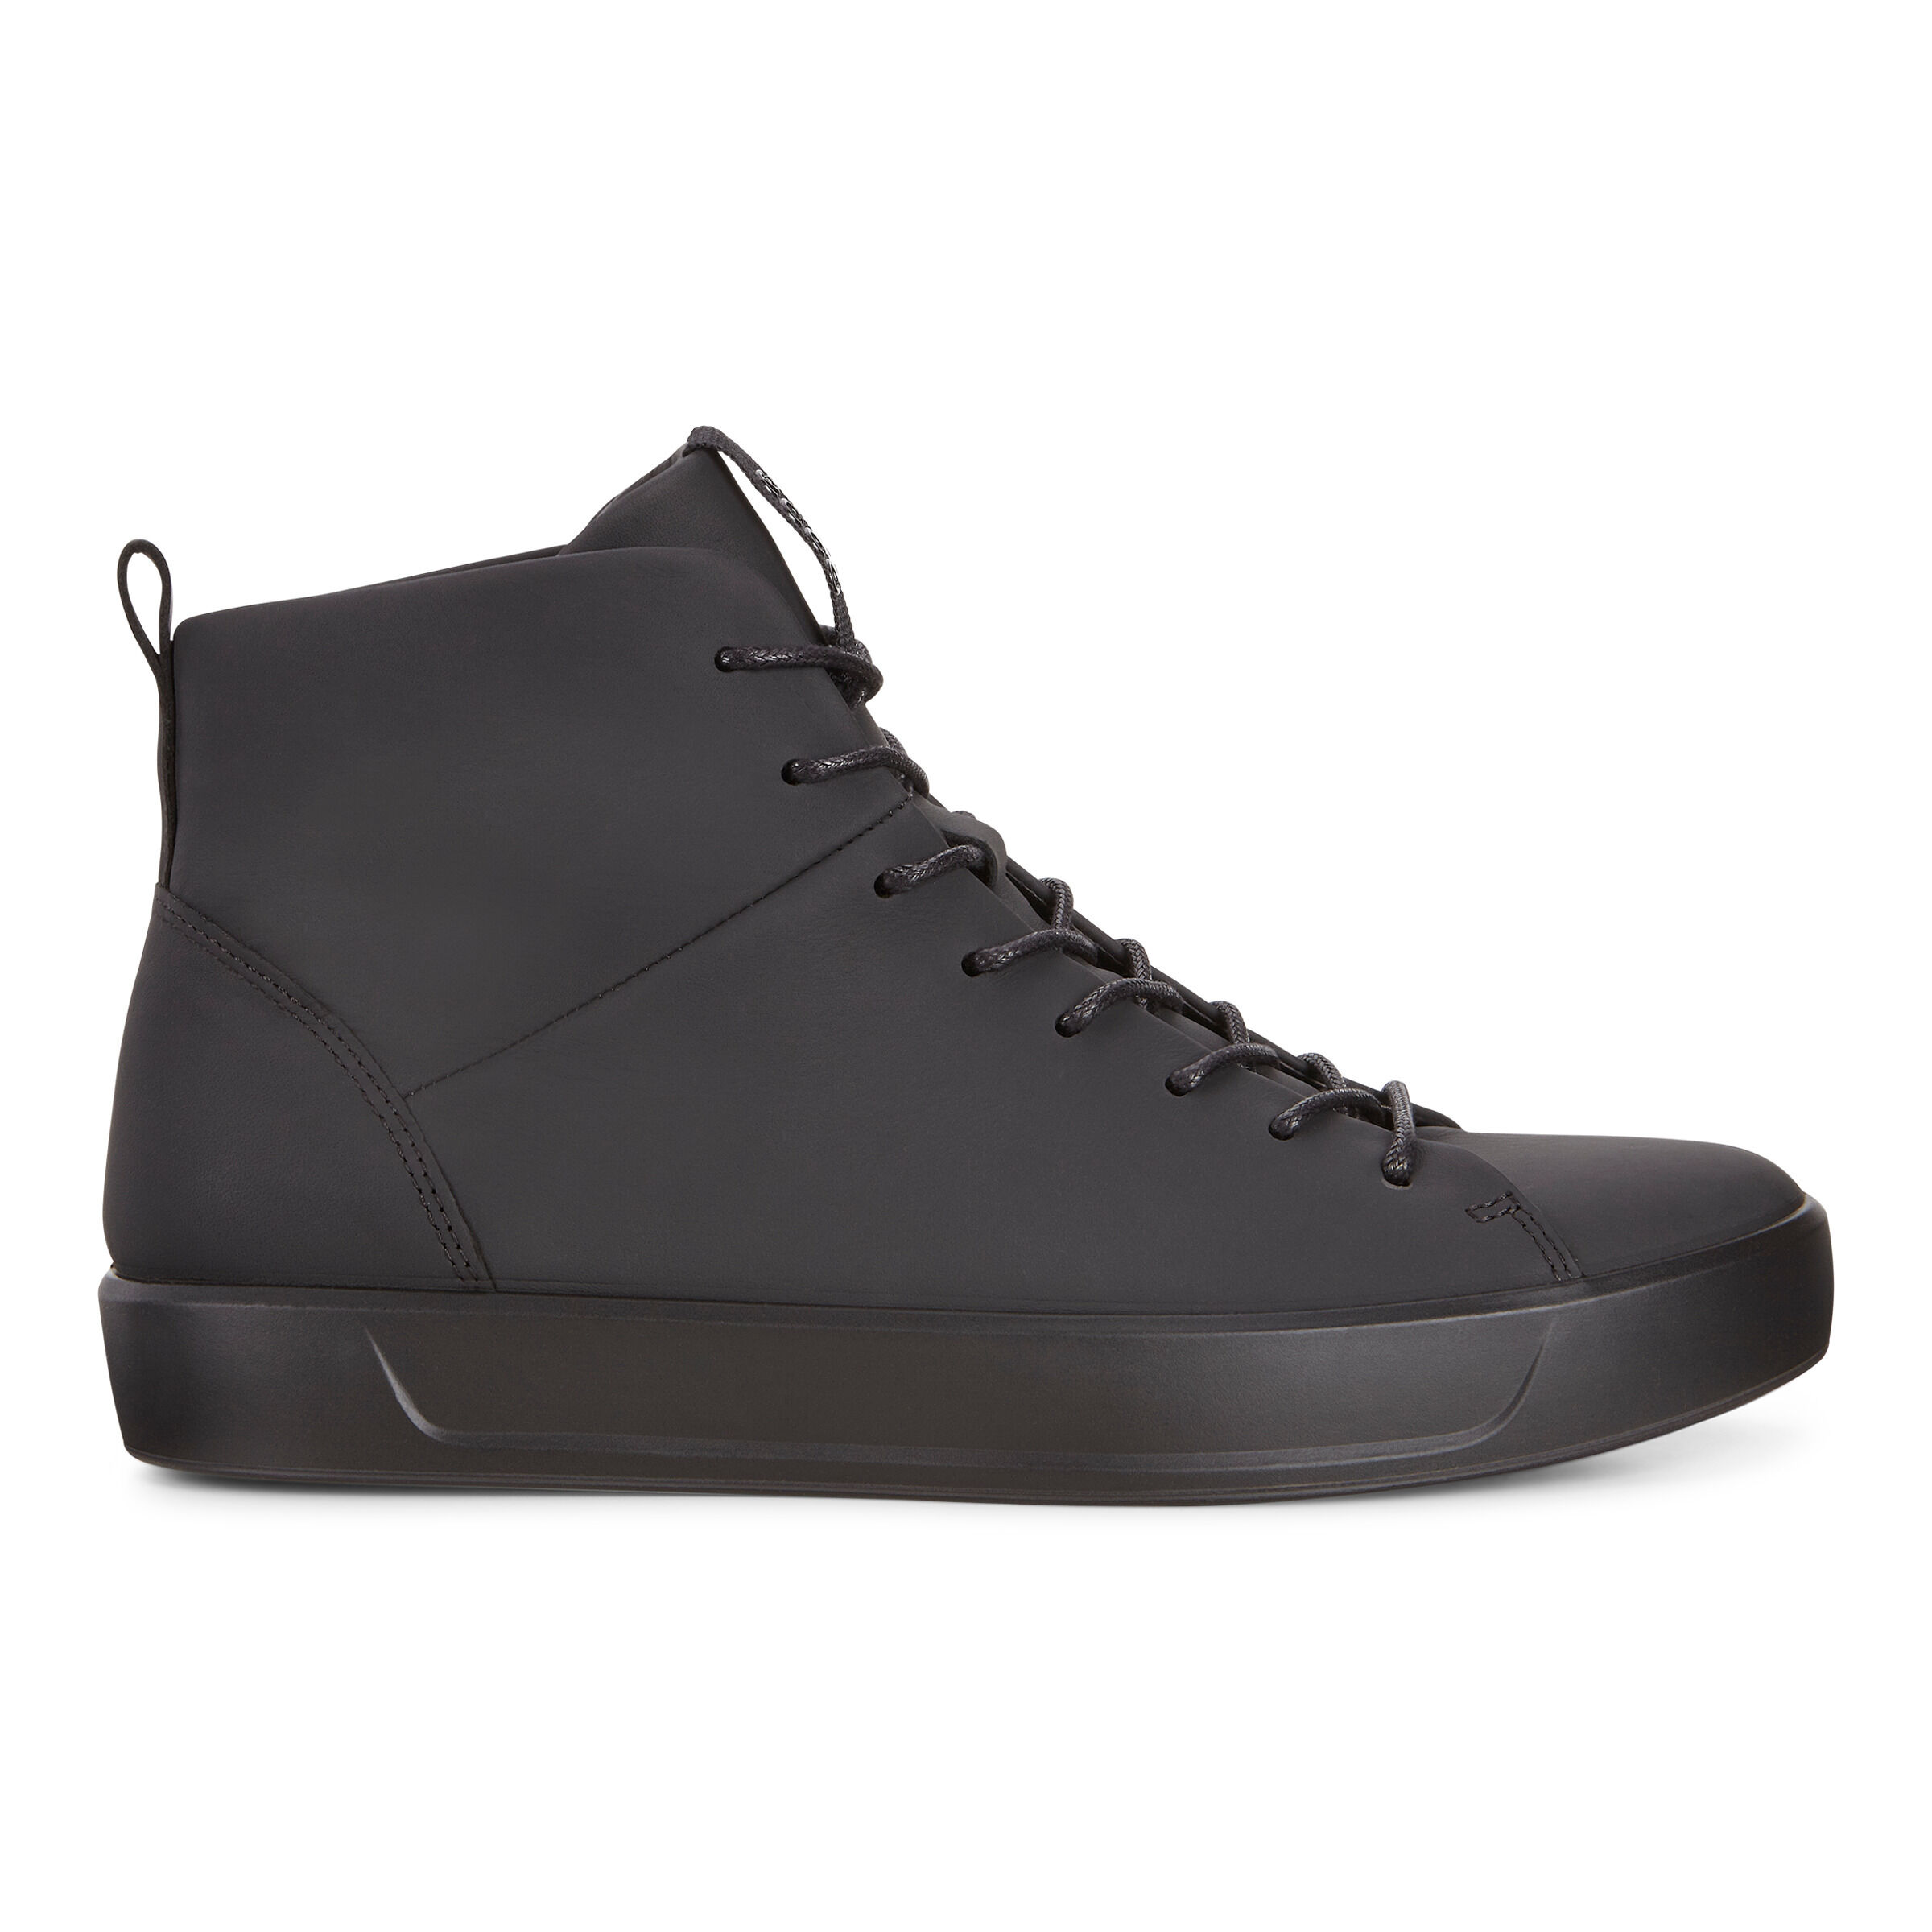 ECCO Men's Soft 8 High Top | Men's Boots | ECCO® Shoes